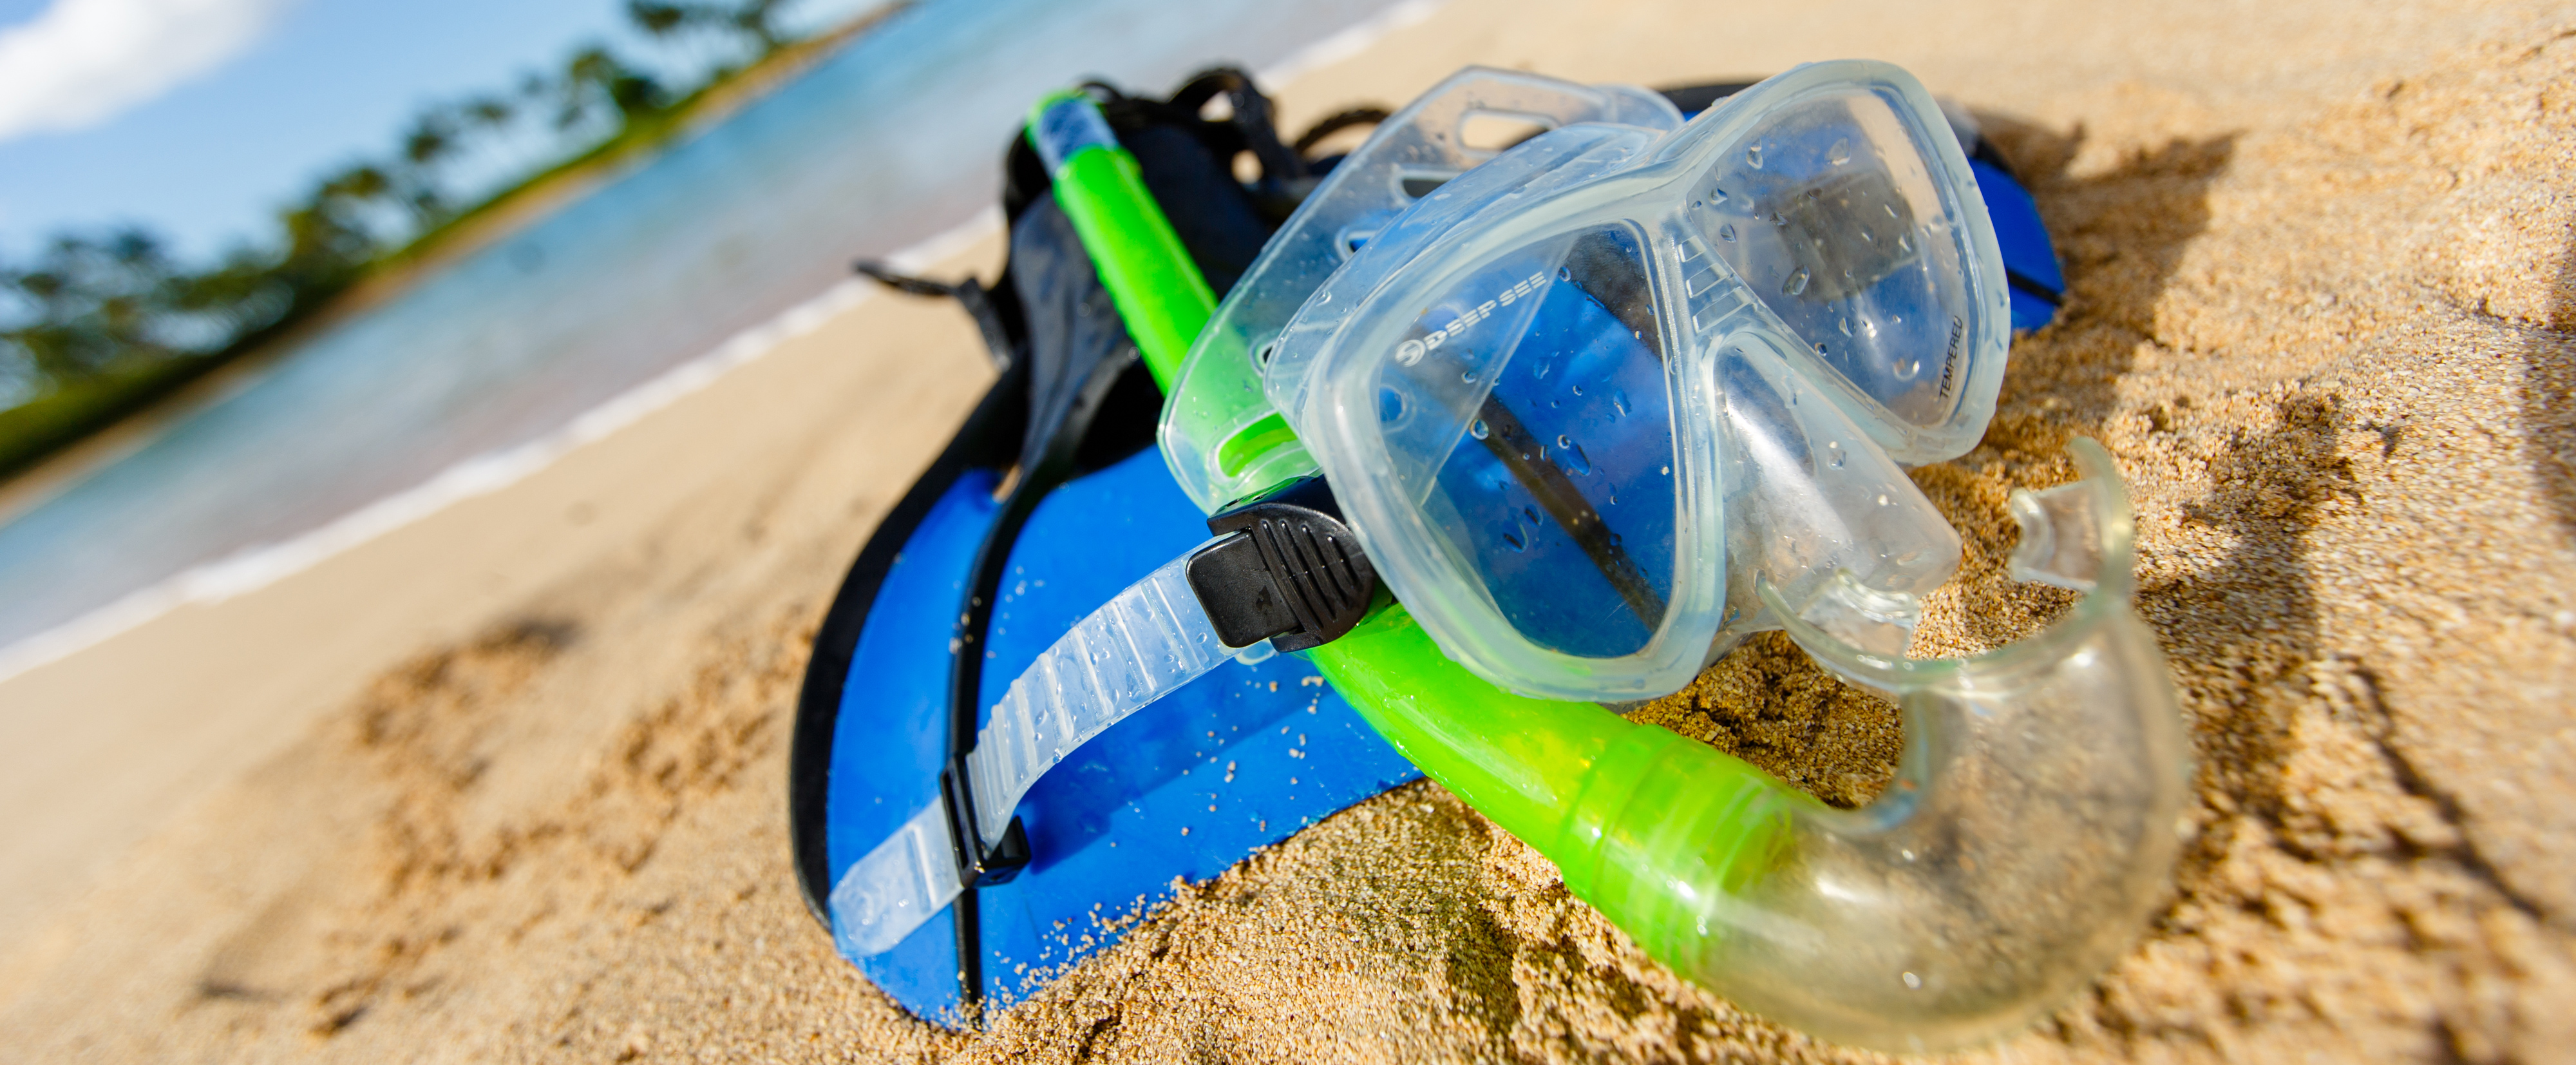 A snorkel mask and flippers on the shore of a sandy beach